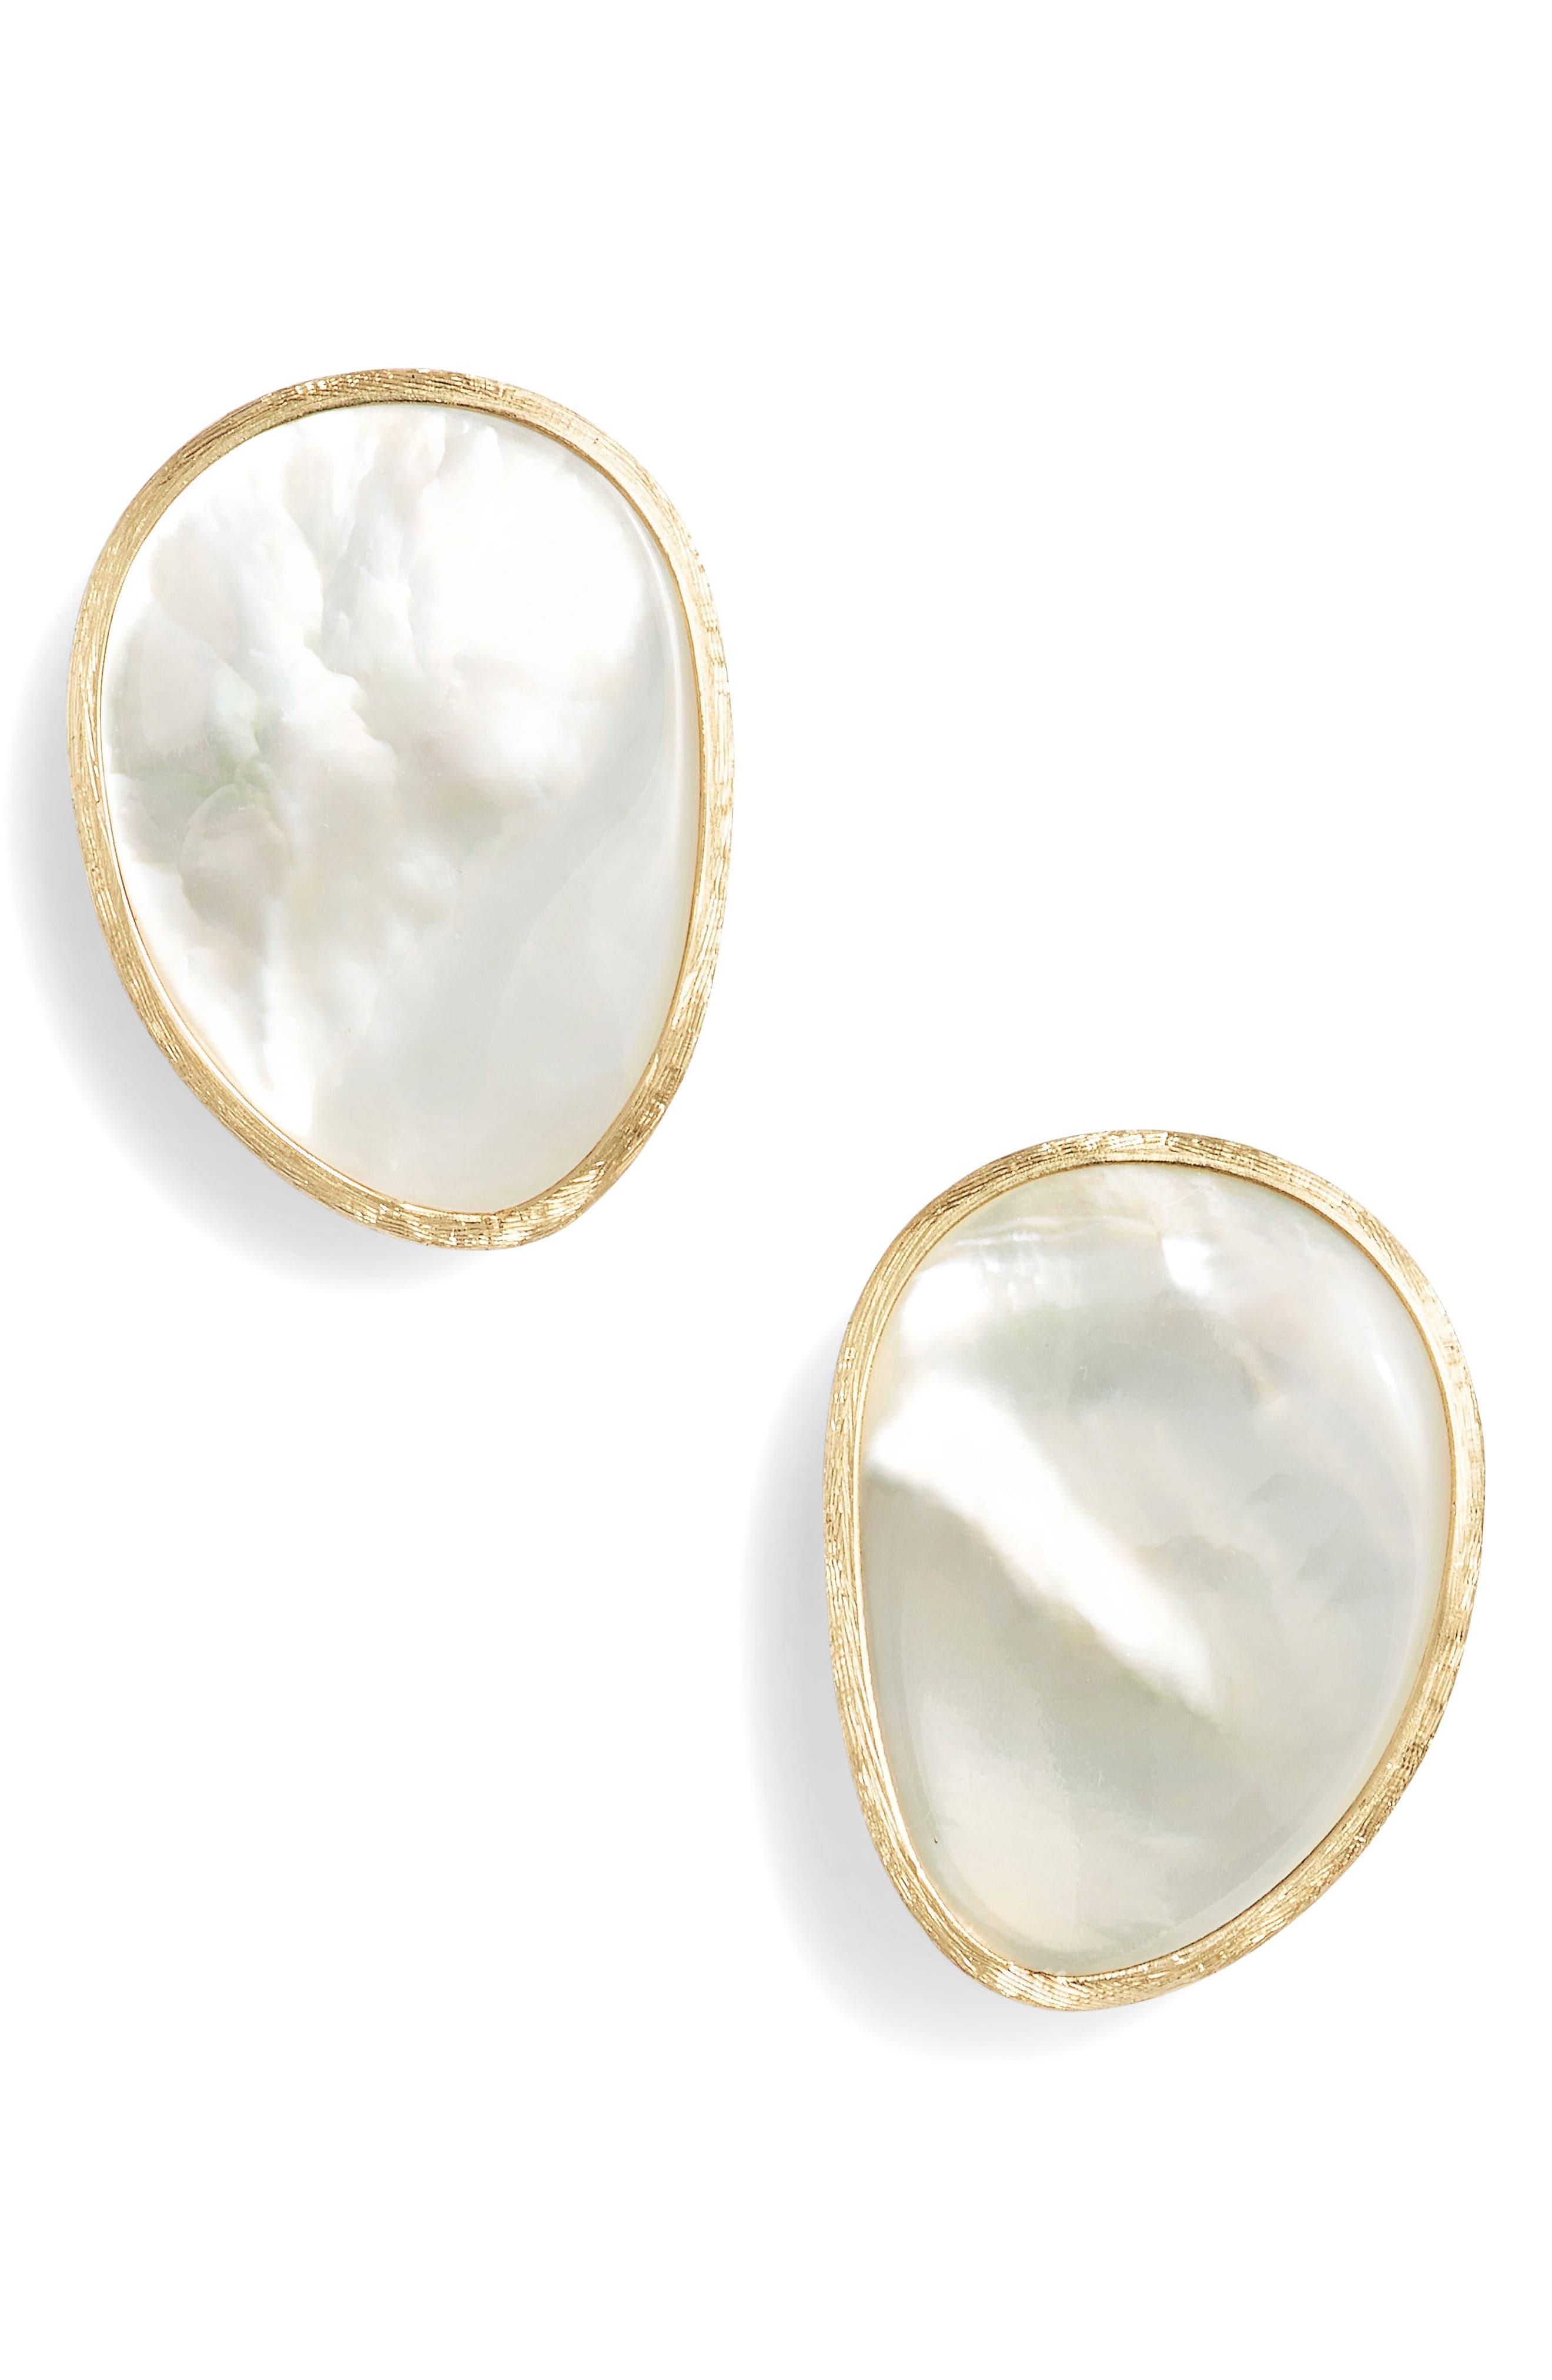 MARCO BICEGO 18K Yellow Gold Lunaria Mother Of Pearl Stud Earrings in White Mother Of Pearl